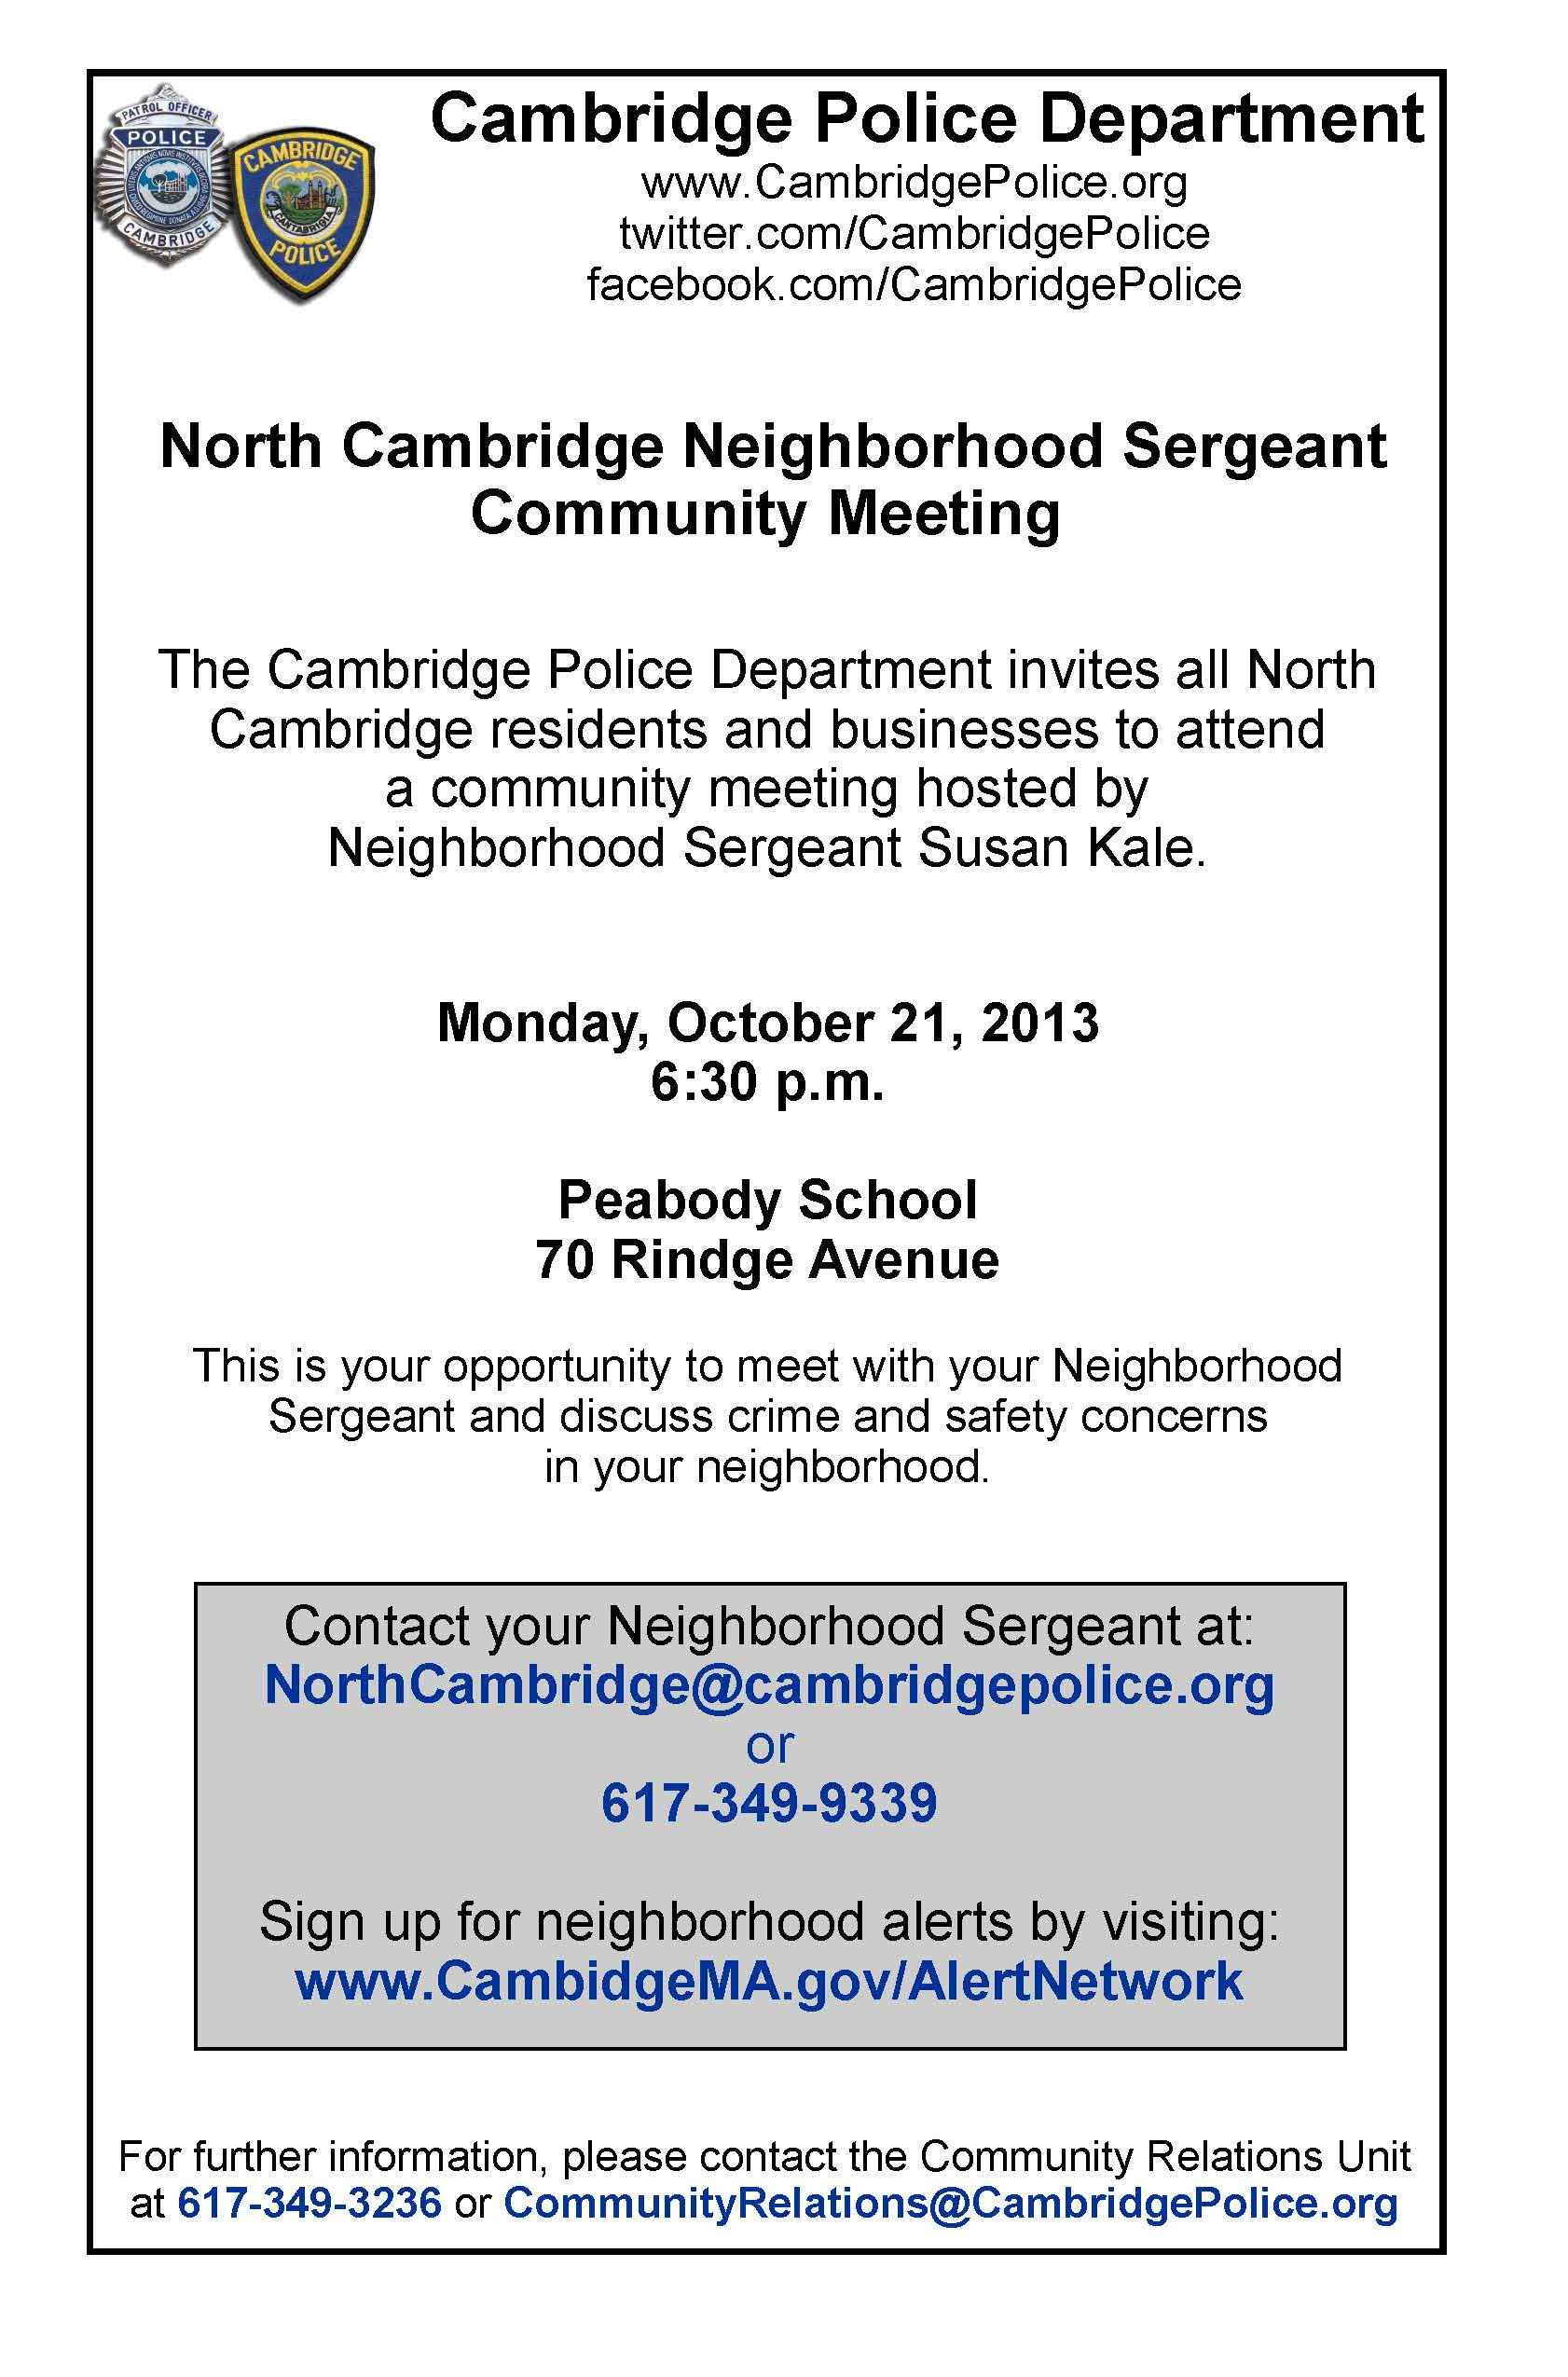 North Cambridge Meeting Flyer